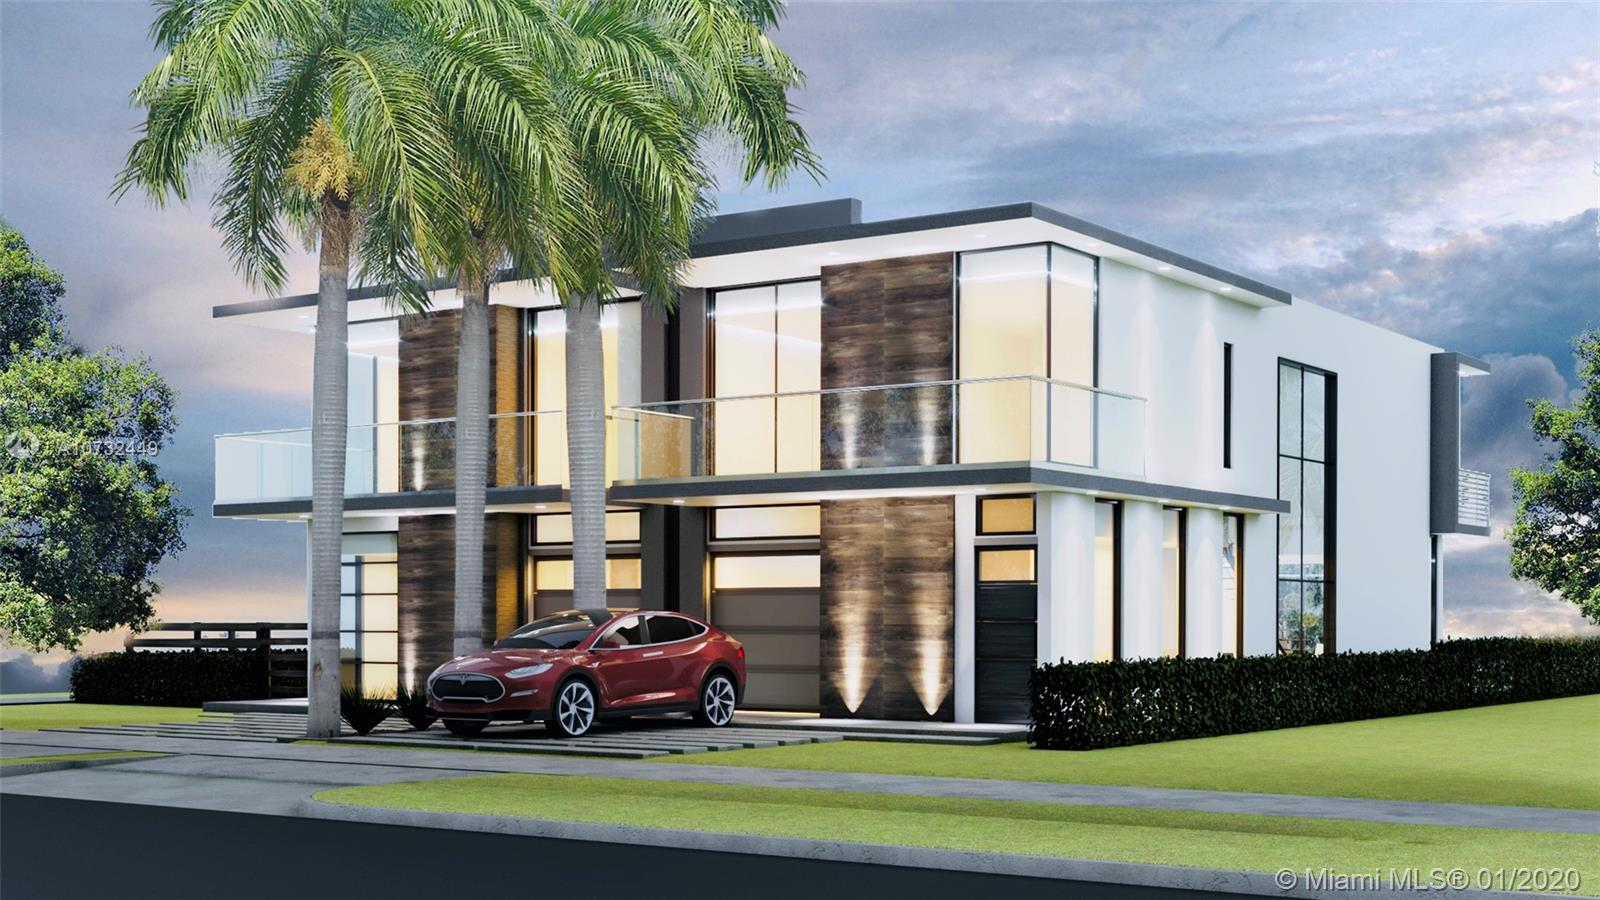 Introducing The Estates at Coral Ridge where iconic contemporary architecture meets a luxurious lifestyle. Designed by a world-famous and awarded architect & designer specifically with exquisite interior design, style, and modern elegance. A brand new and now already under construction boutique attached family homes within a walking distance from Fort Lauderdale Beach. 